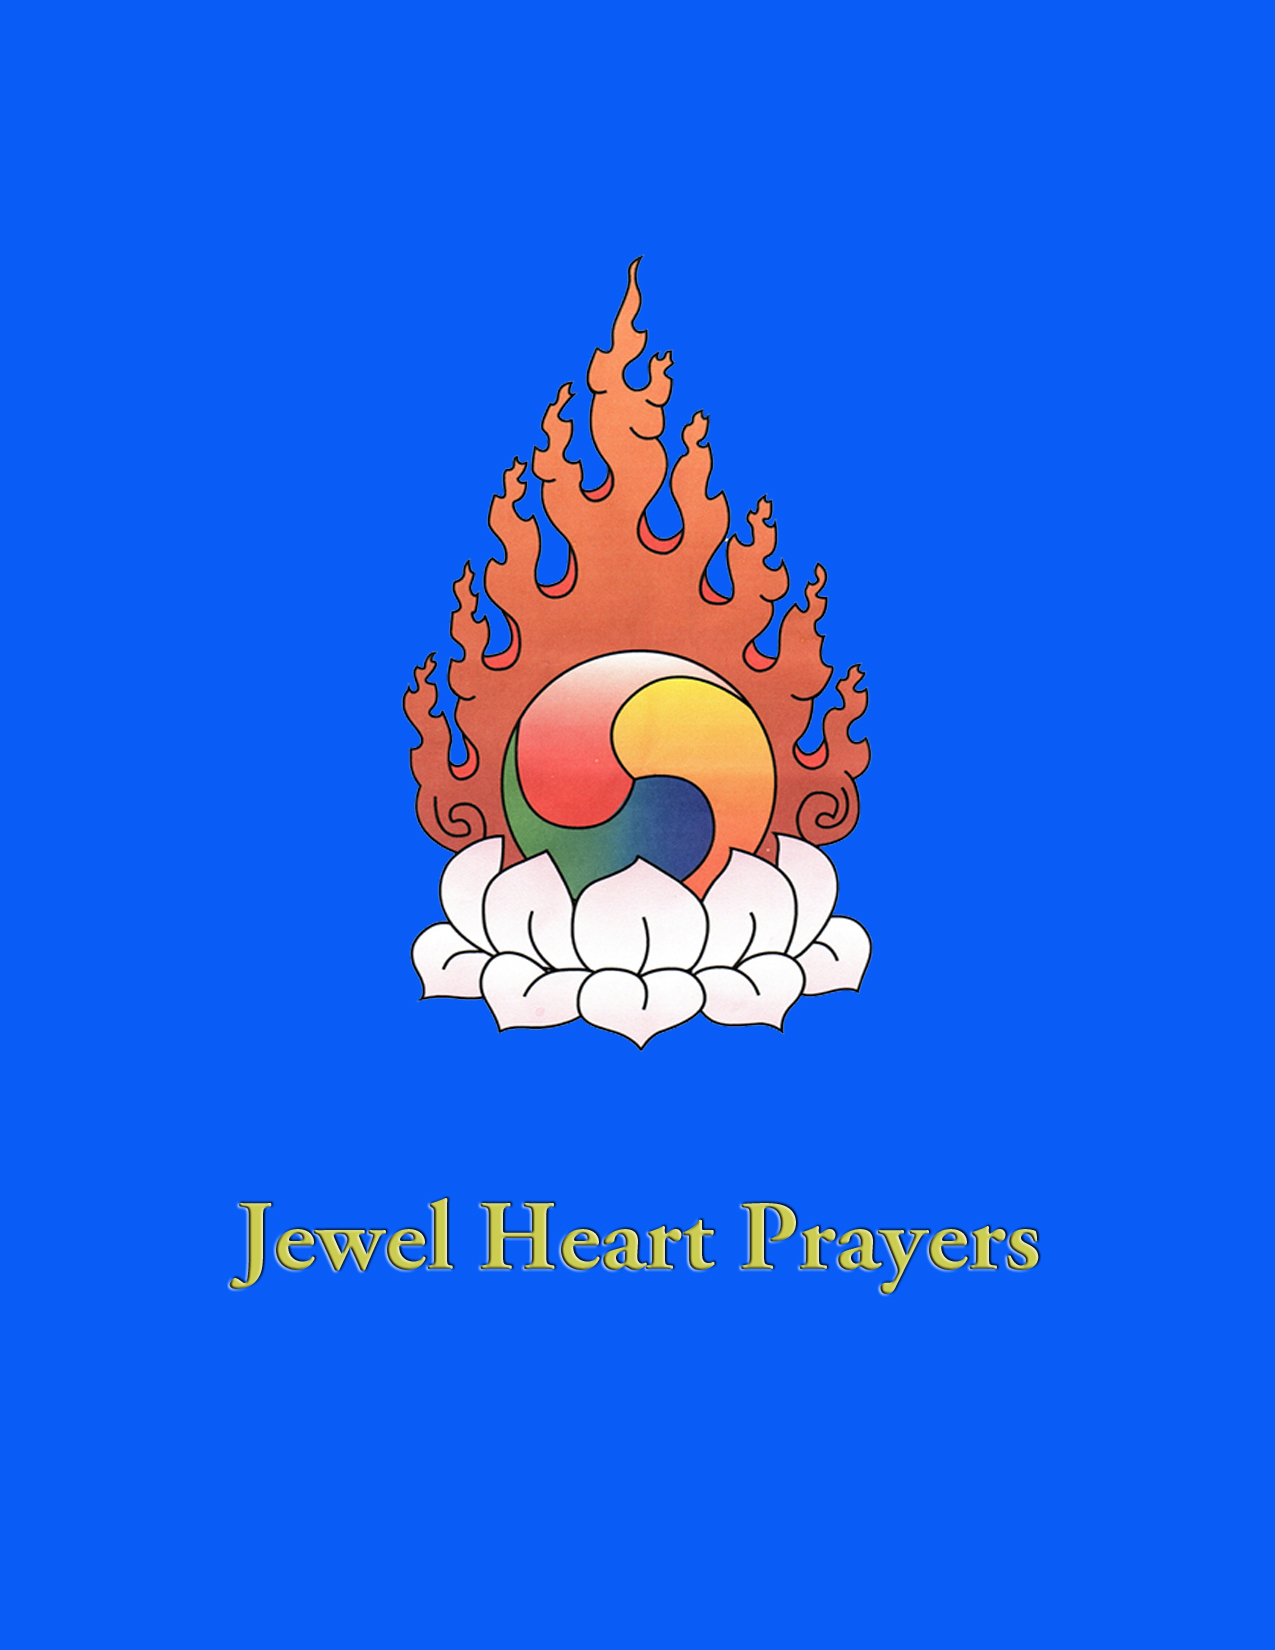 Jewel Heart Prayers